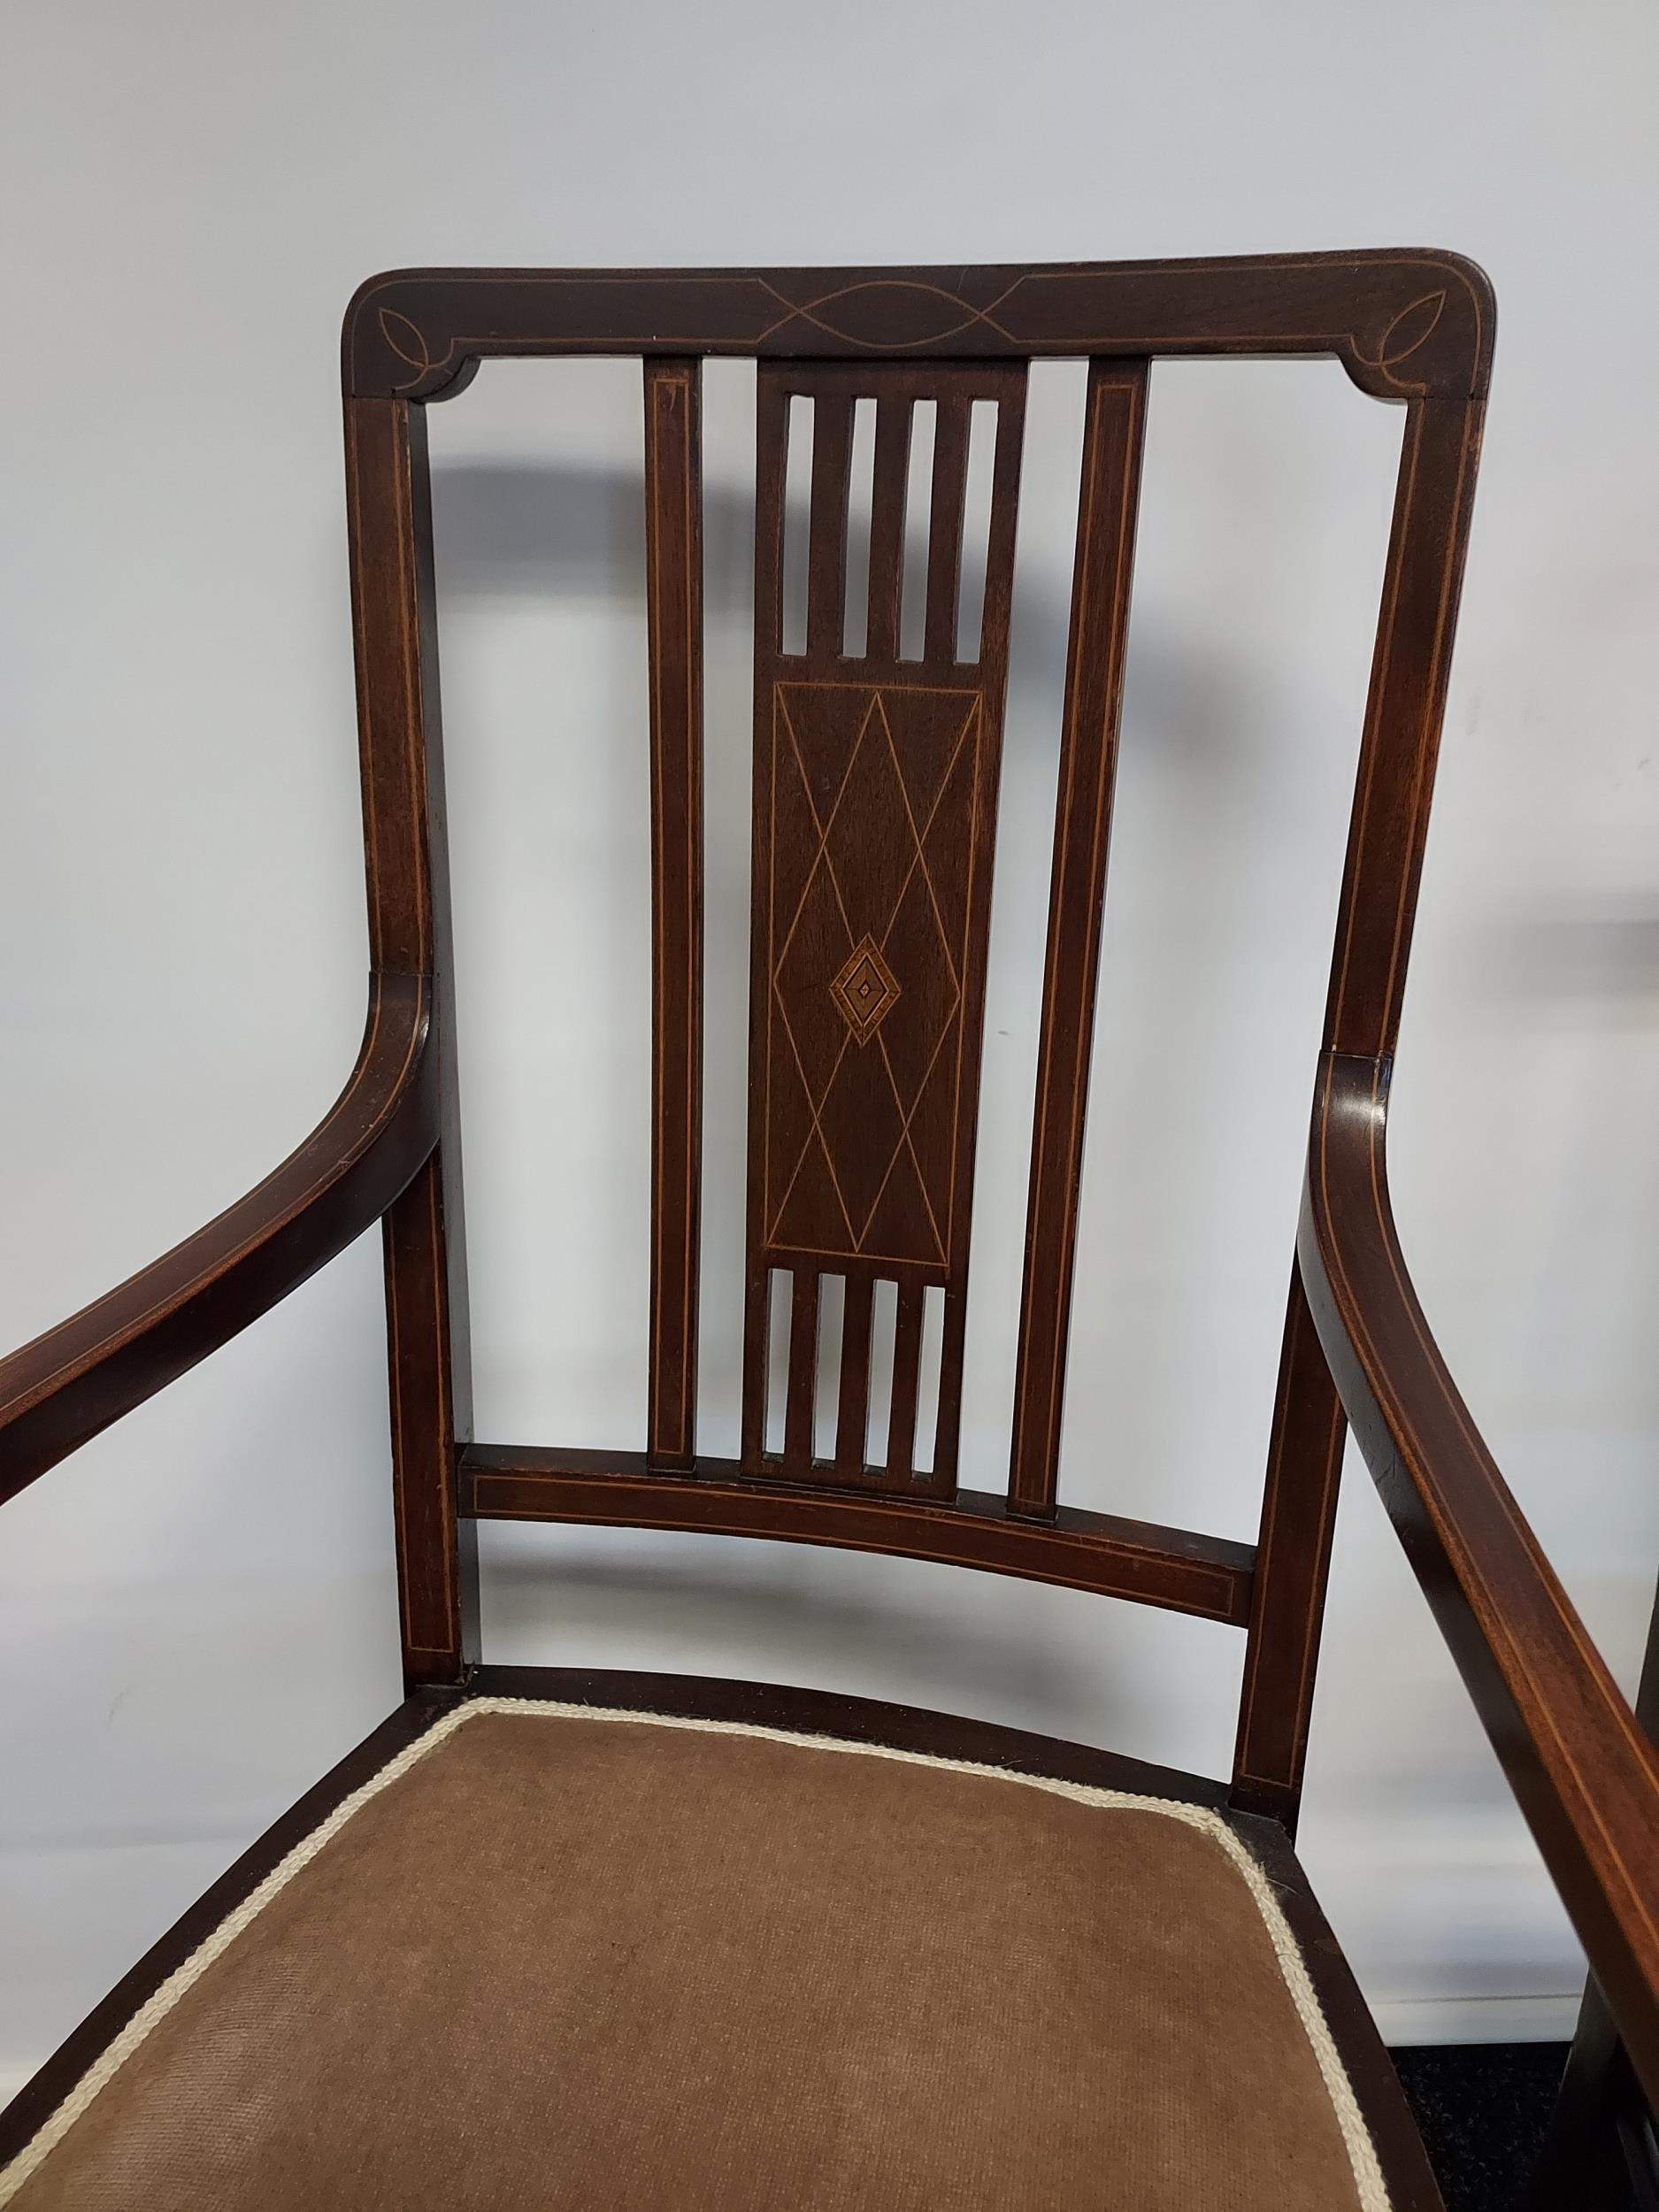 Edwardian inlaid armchair with partner chair - Image 2 of 4